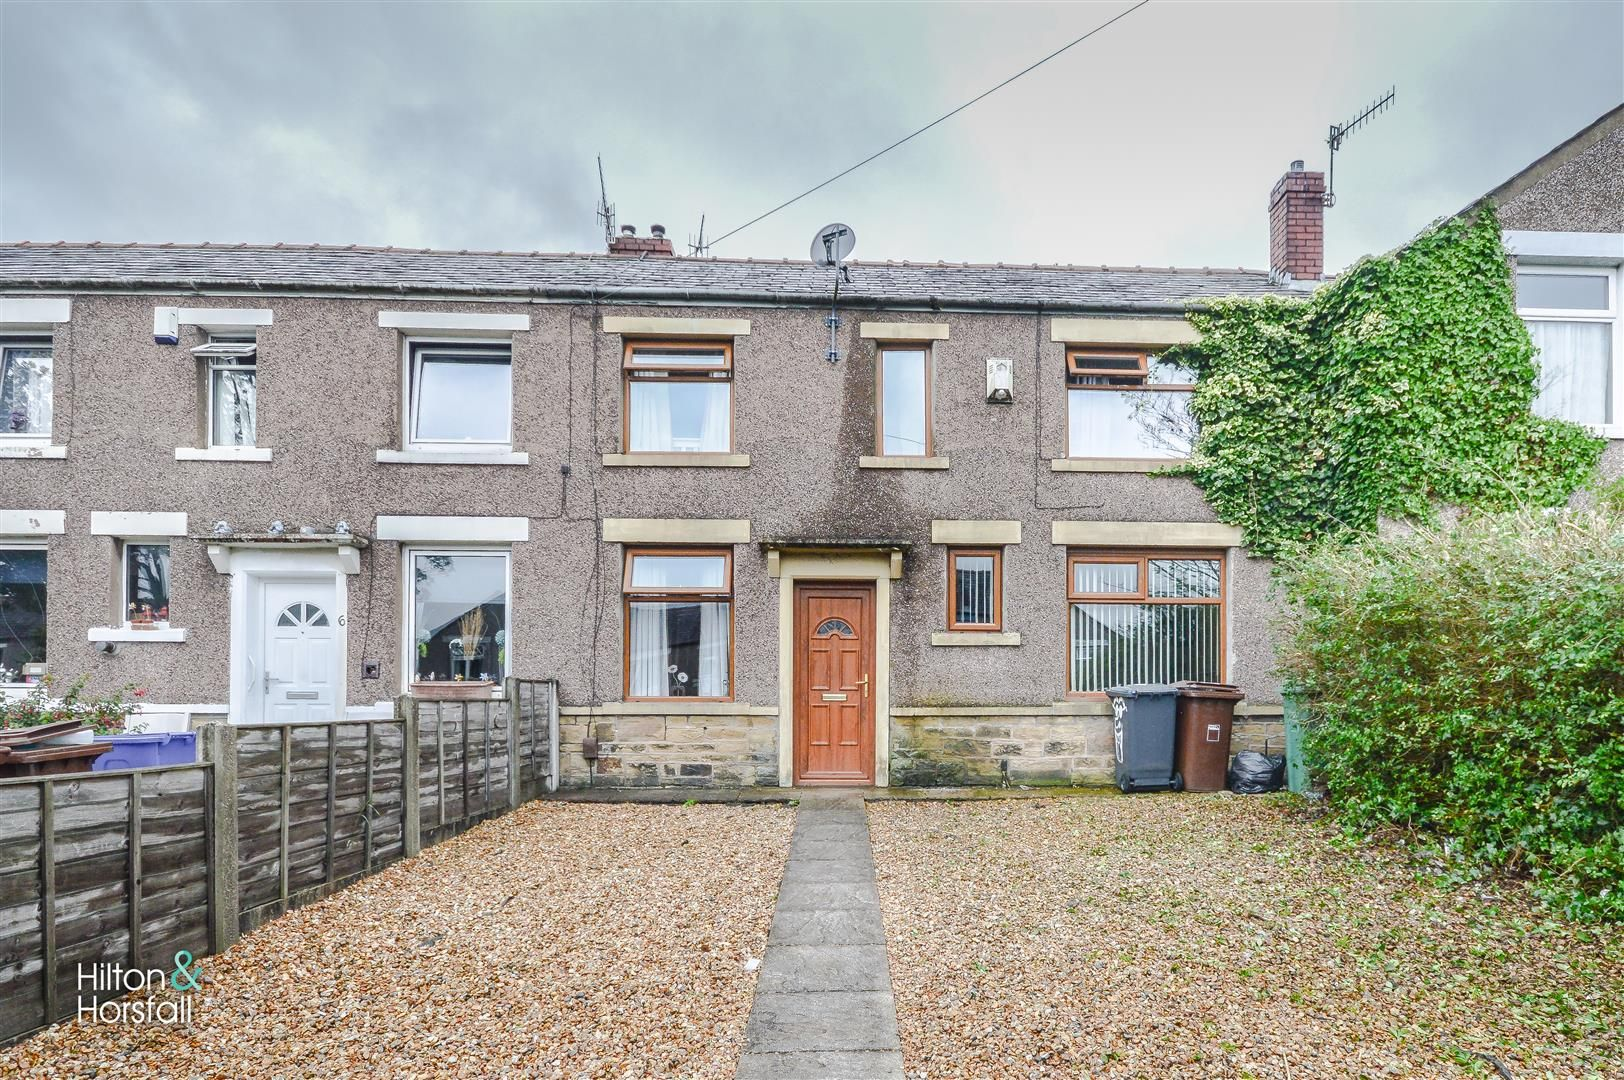 Property photo 1 of 17. Marsden Hall Road